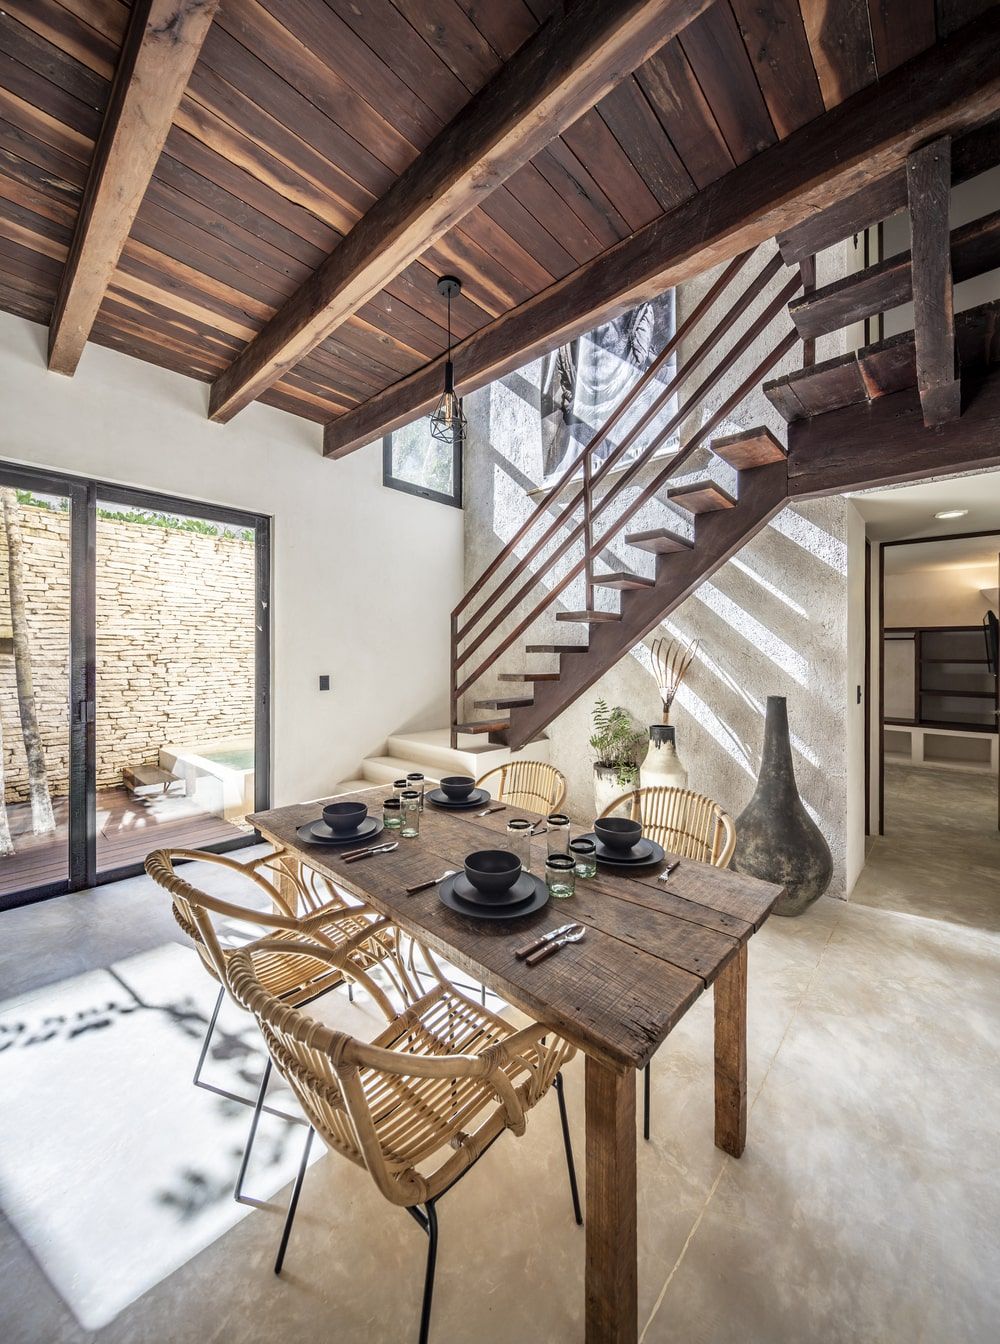 This is a look at the dining area with a wooden rectangular dining table surrounded by woven wicker chairs.